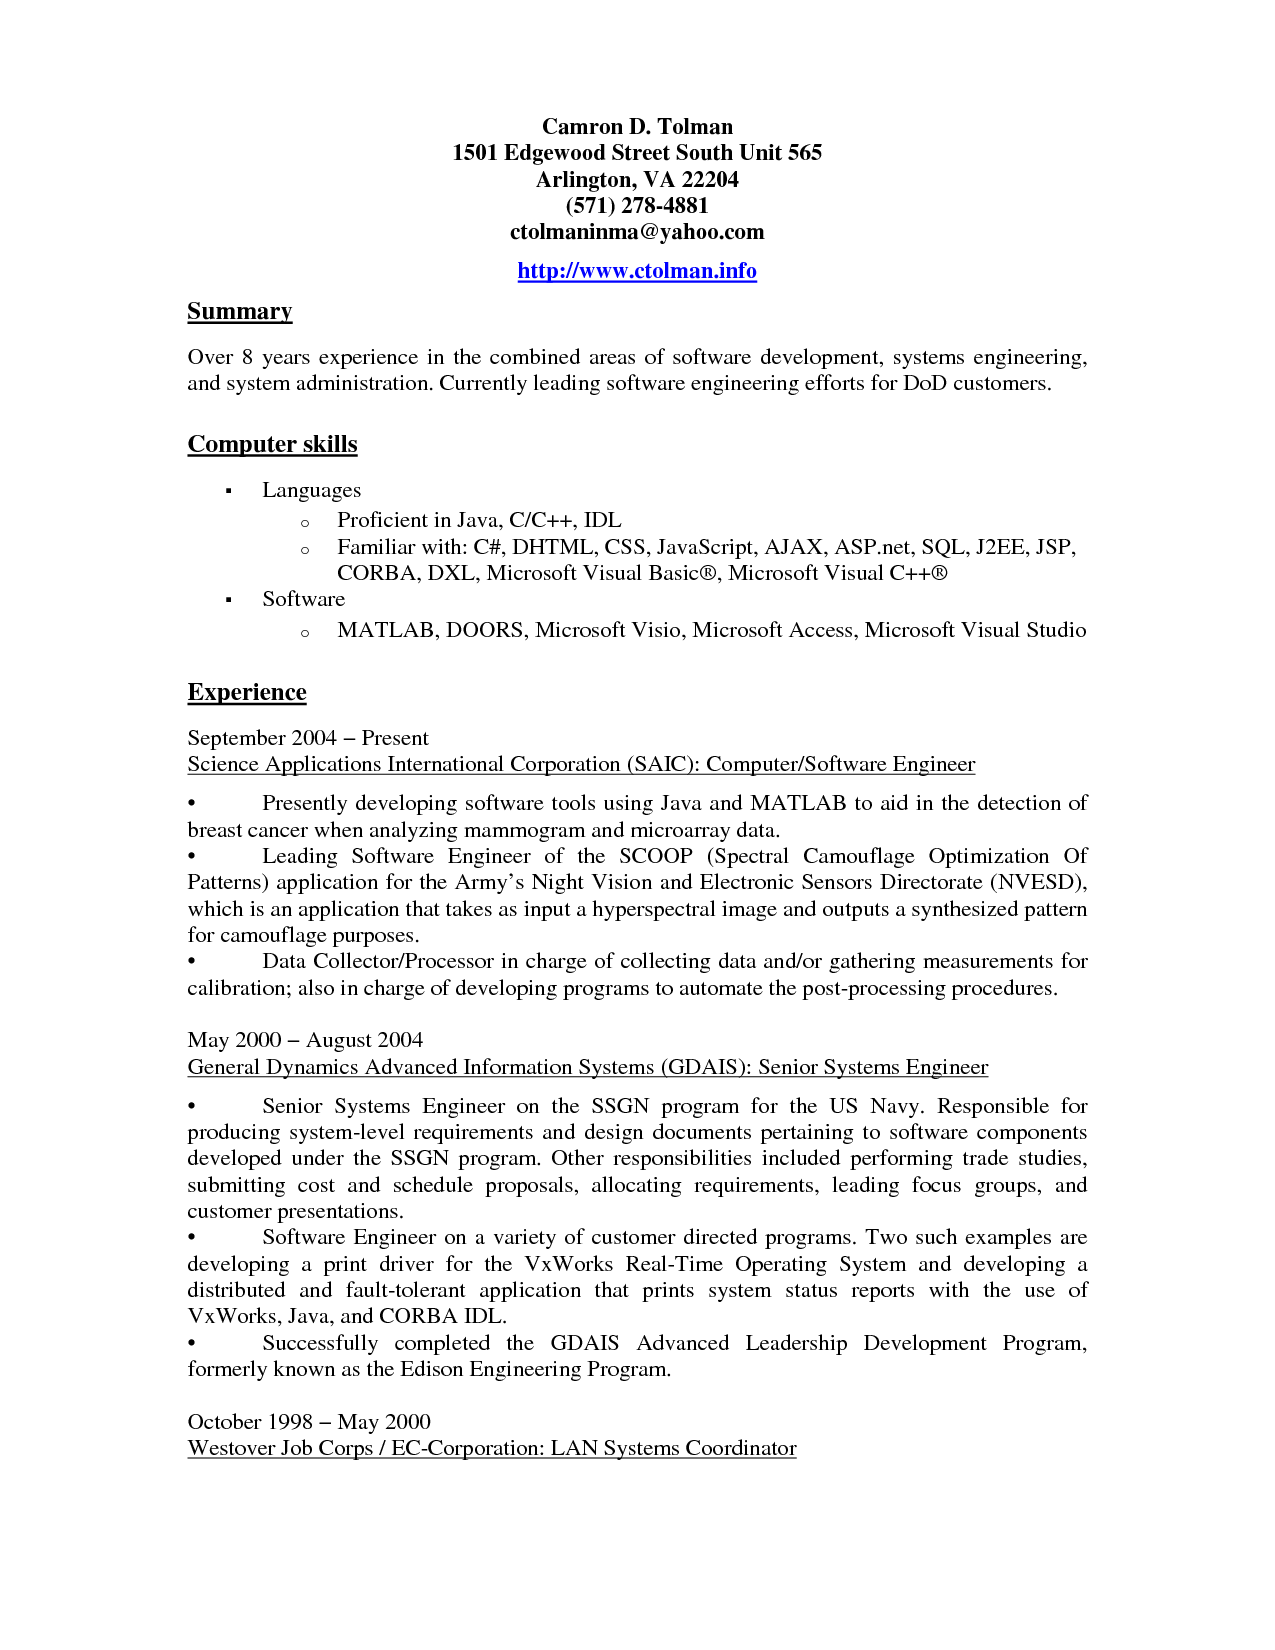 Computer Proficiency Resume Sample http//www